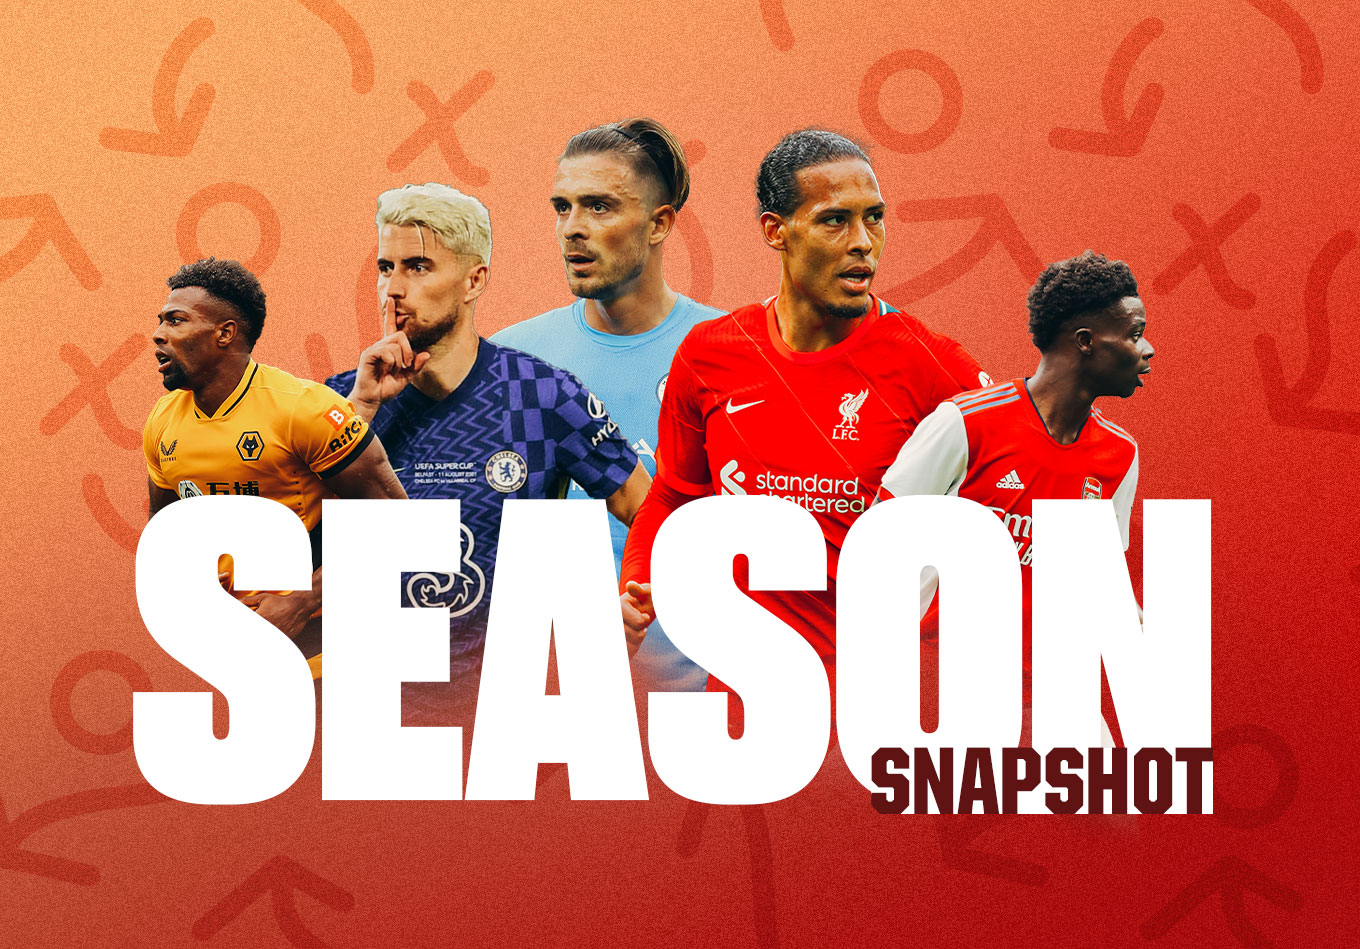 Season Snapshot: The Key Analytical Storylines From The Premier League So Far